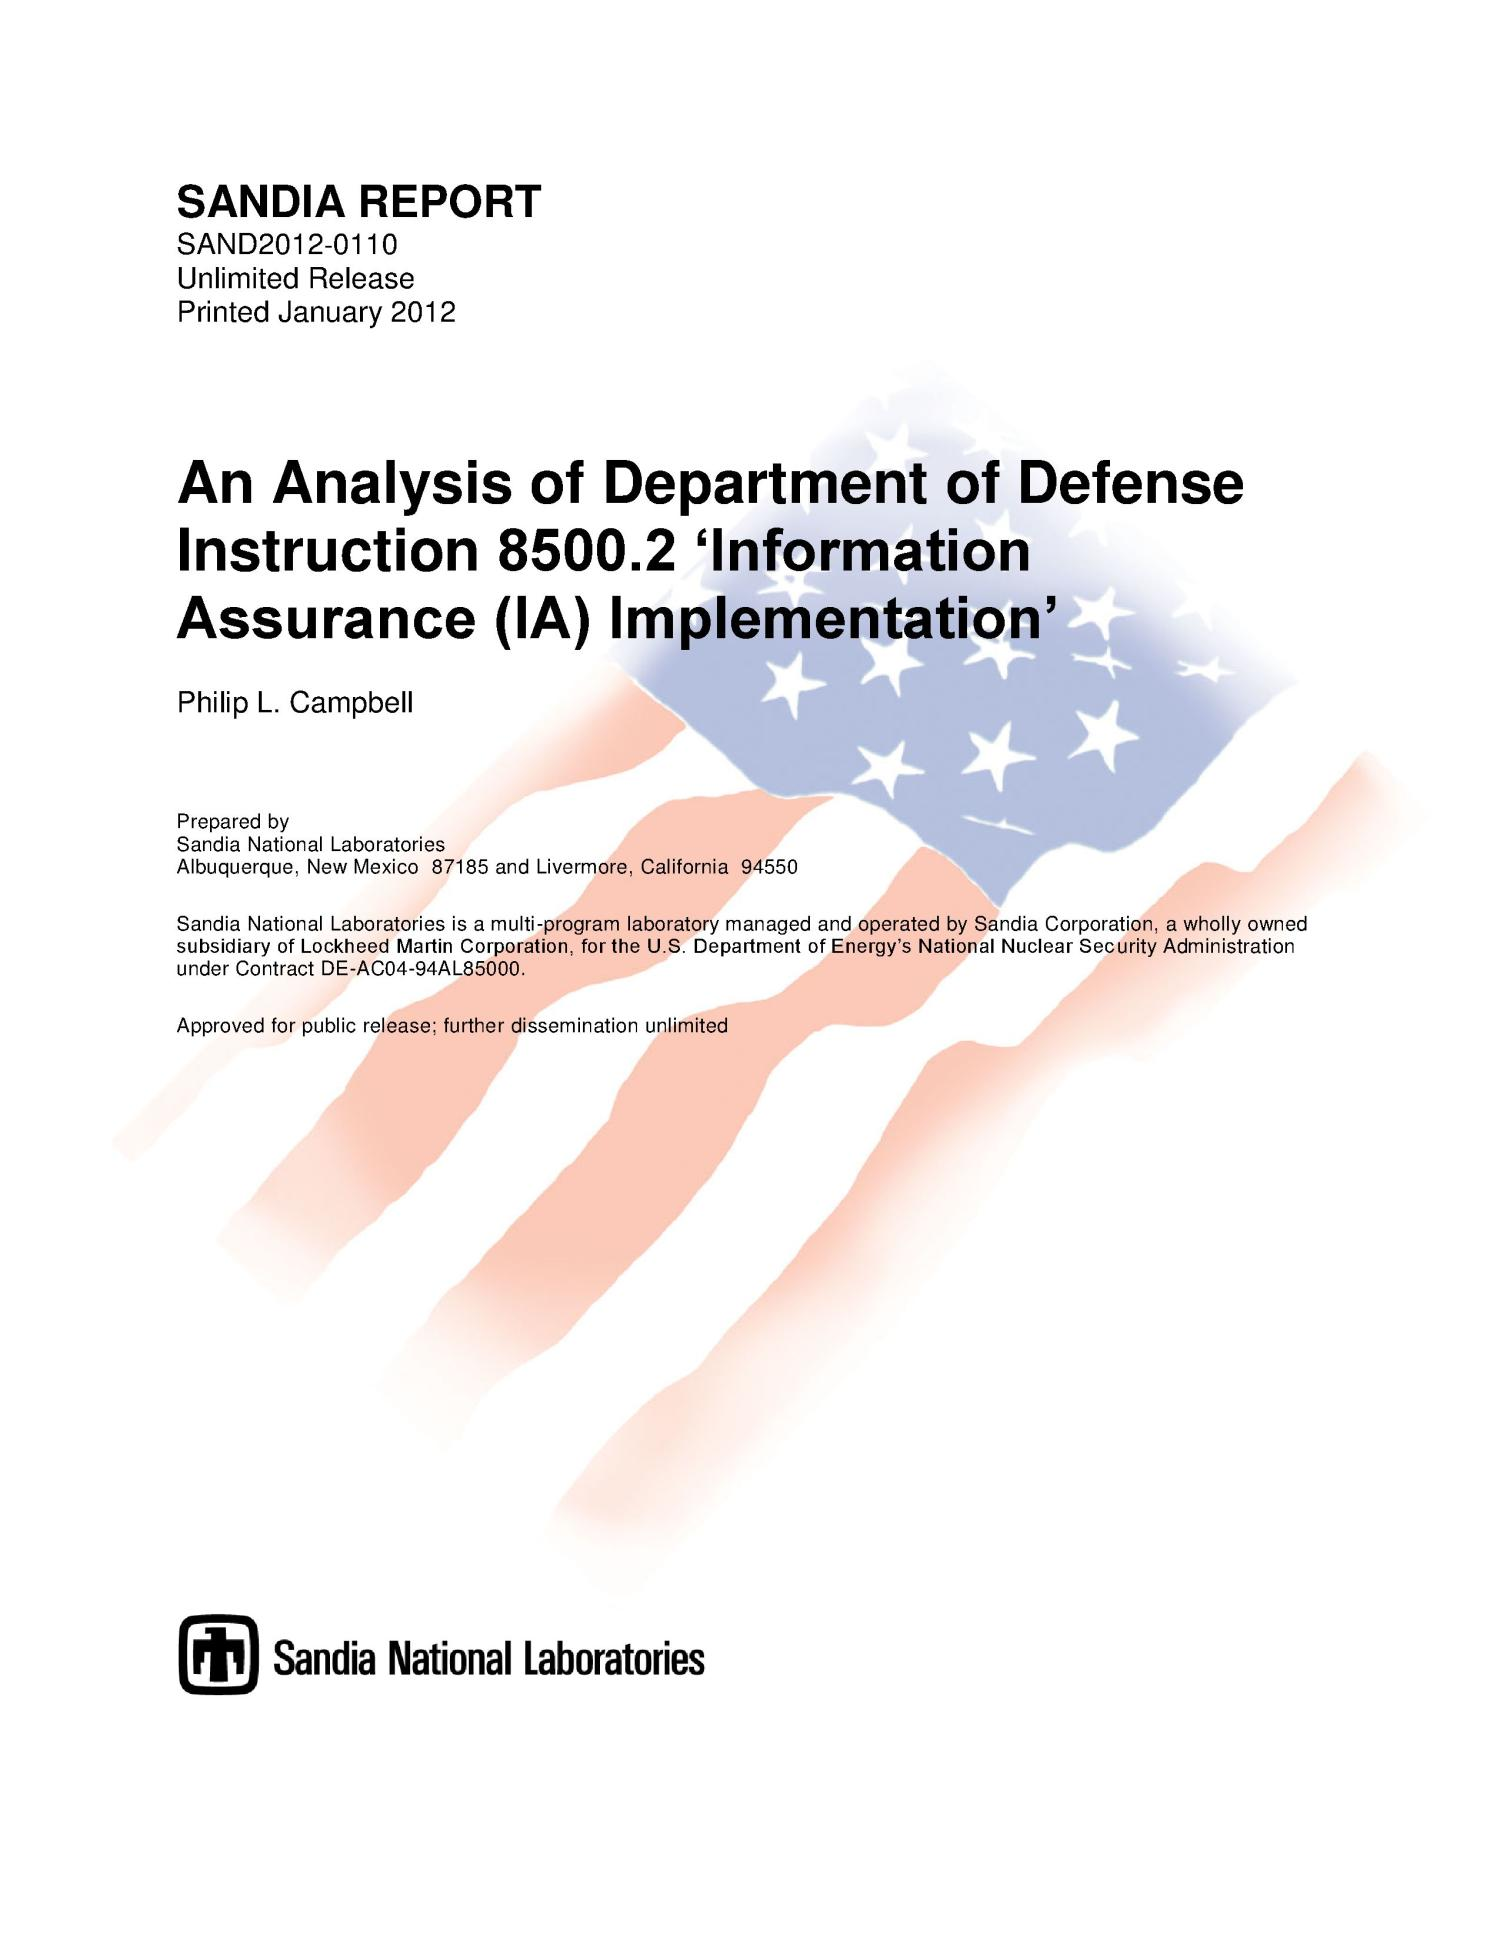 An Analysis of Department of Defense Instruction 8500.2 'Information Assurance (IA) Implementation.'                                                                                                      [Sequence #]: 1 of 136